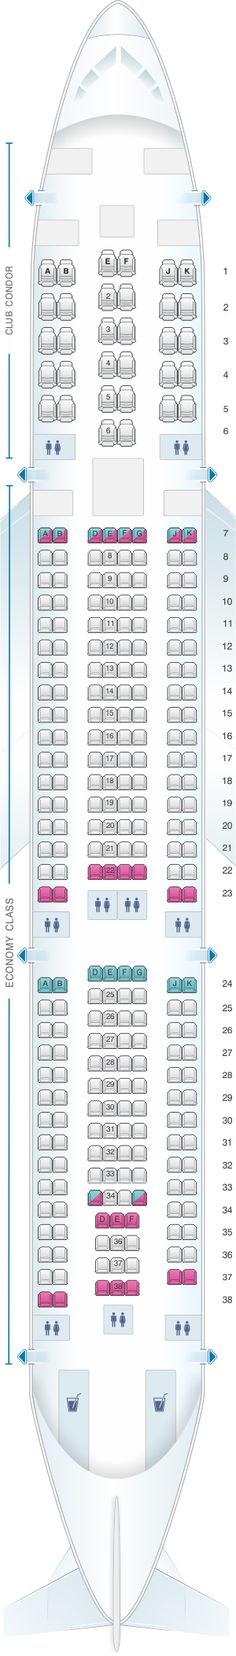 Top 10 Punto Medio Noticias Airbus A340 300 Seating Chart Tap